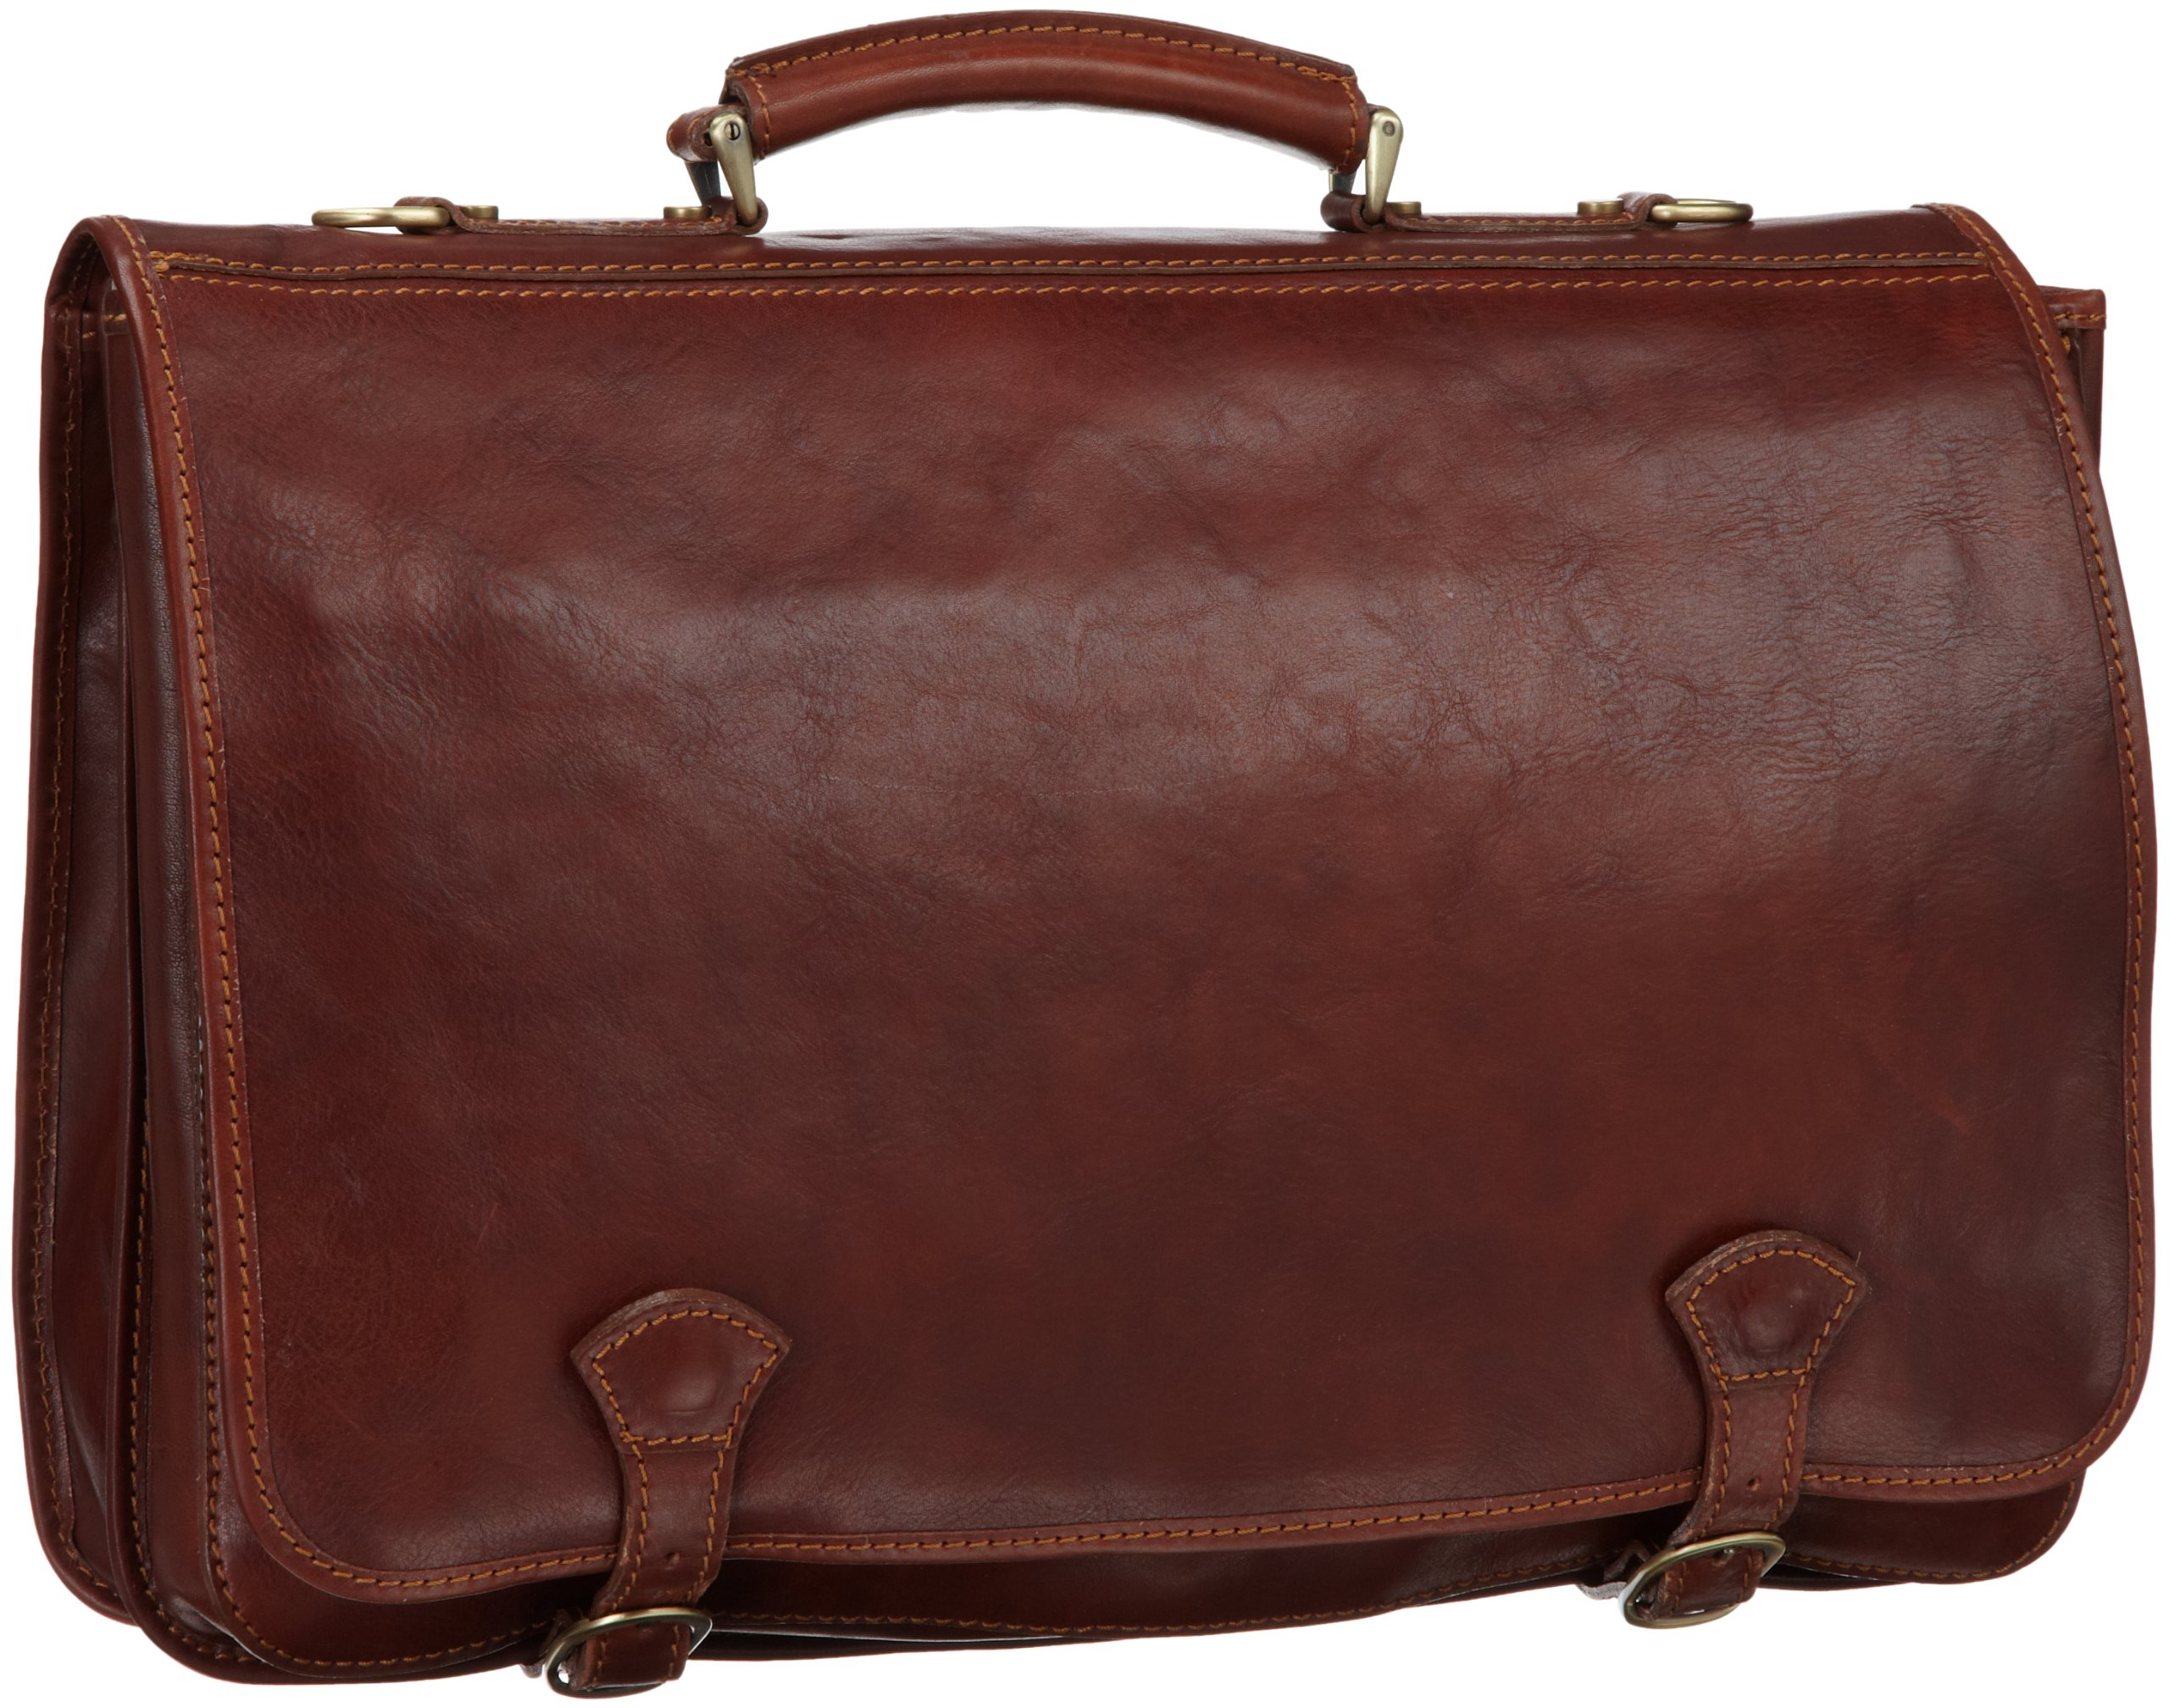 Floto Luggage Piazza Messenger Bag, Brown, One Size by Floto